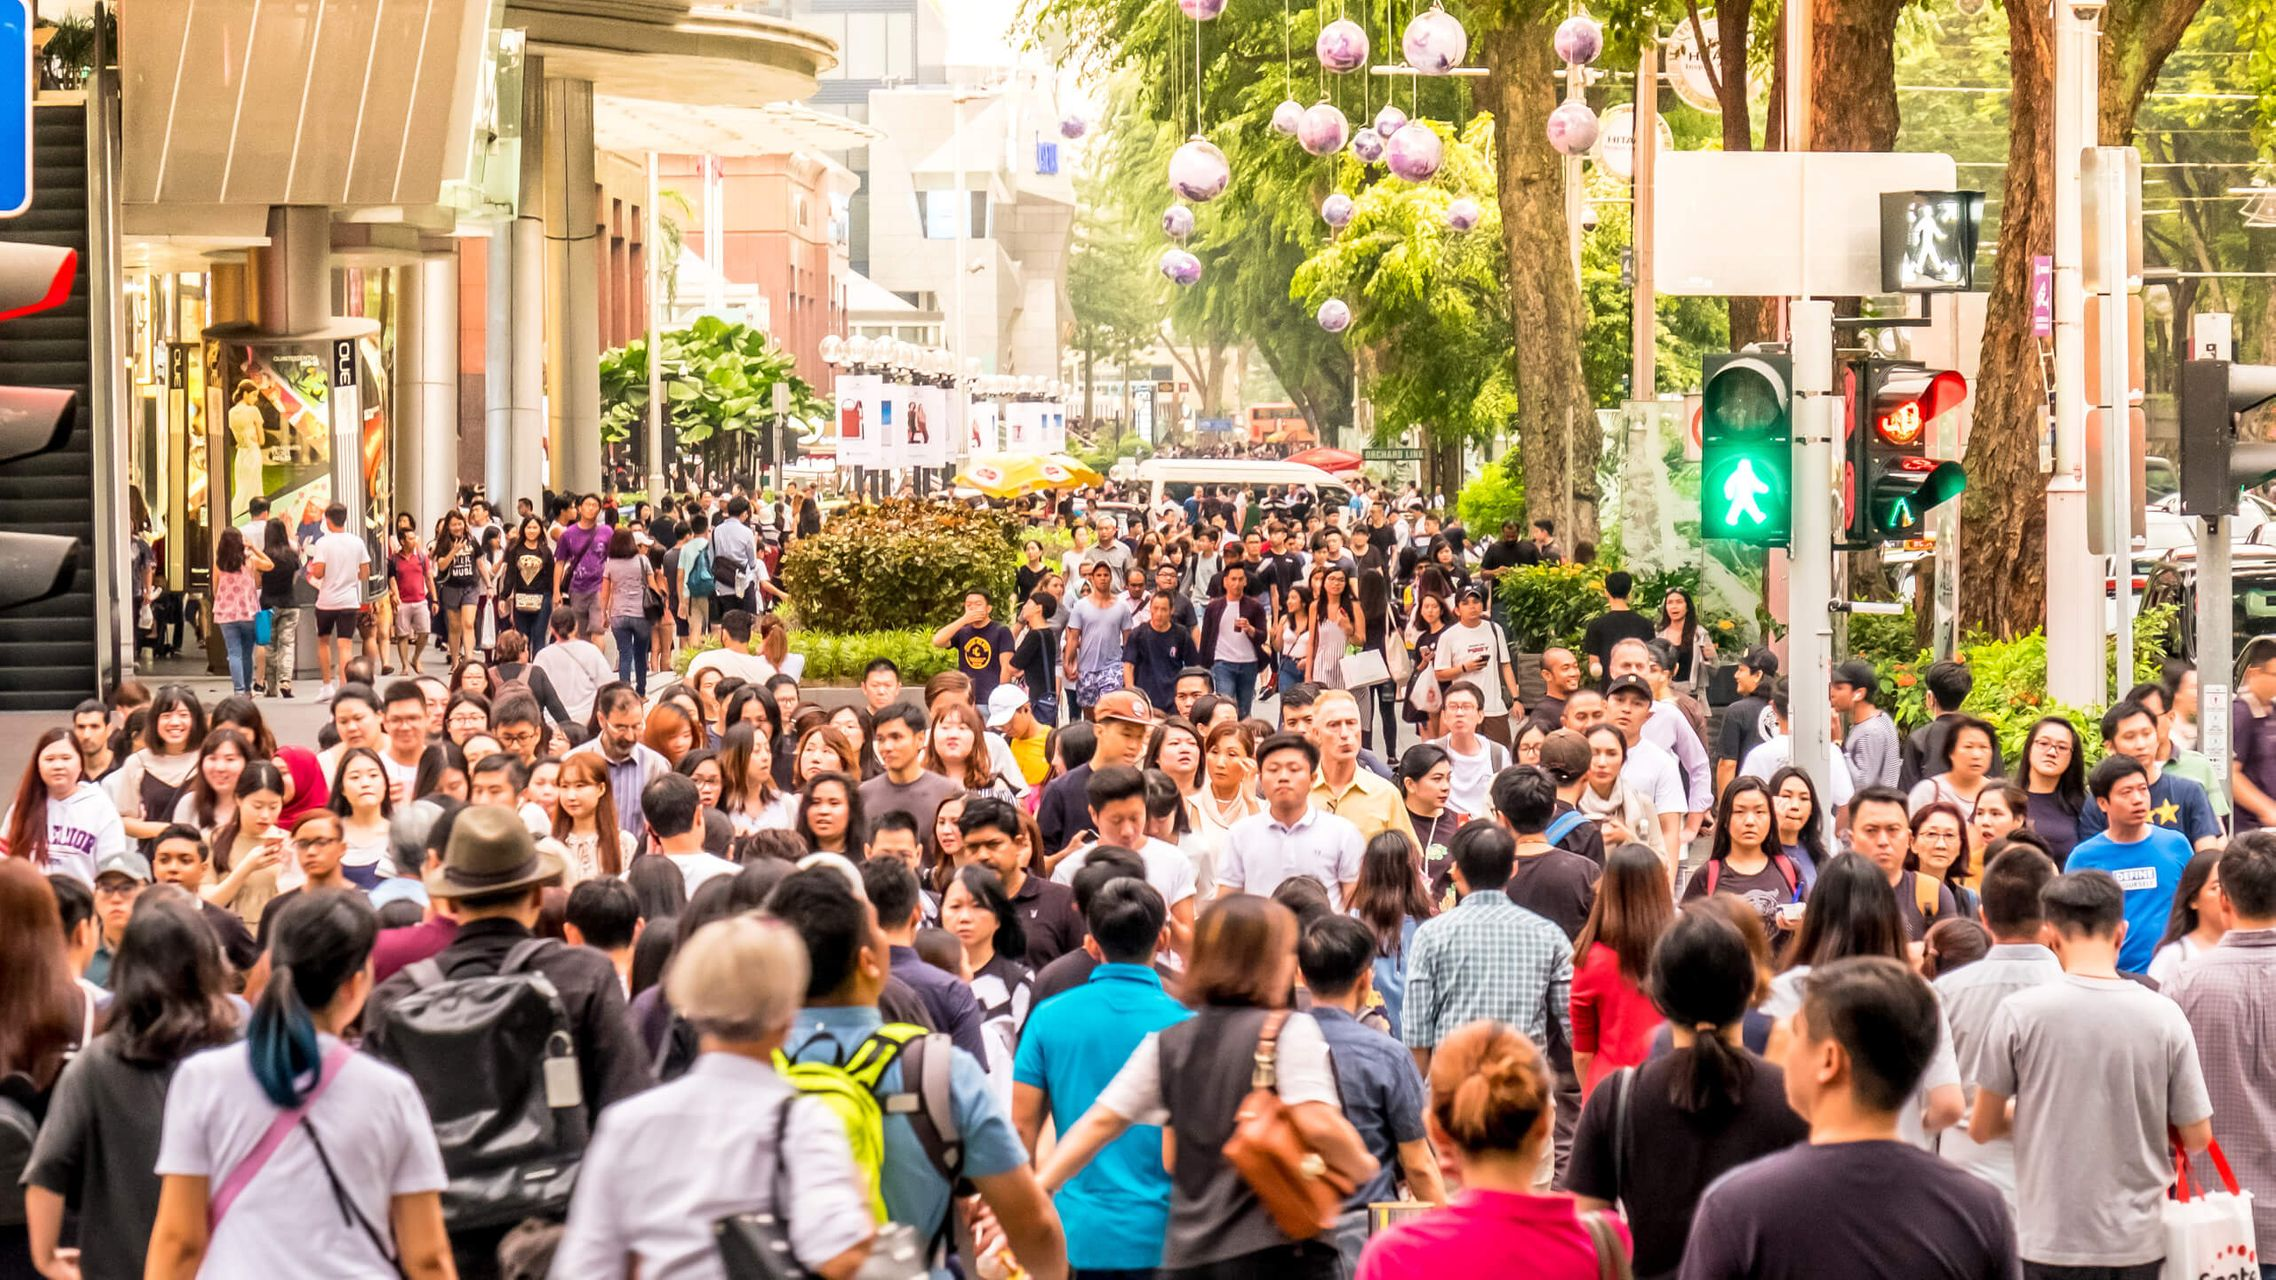 orchard road Singapore, a street packed with people